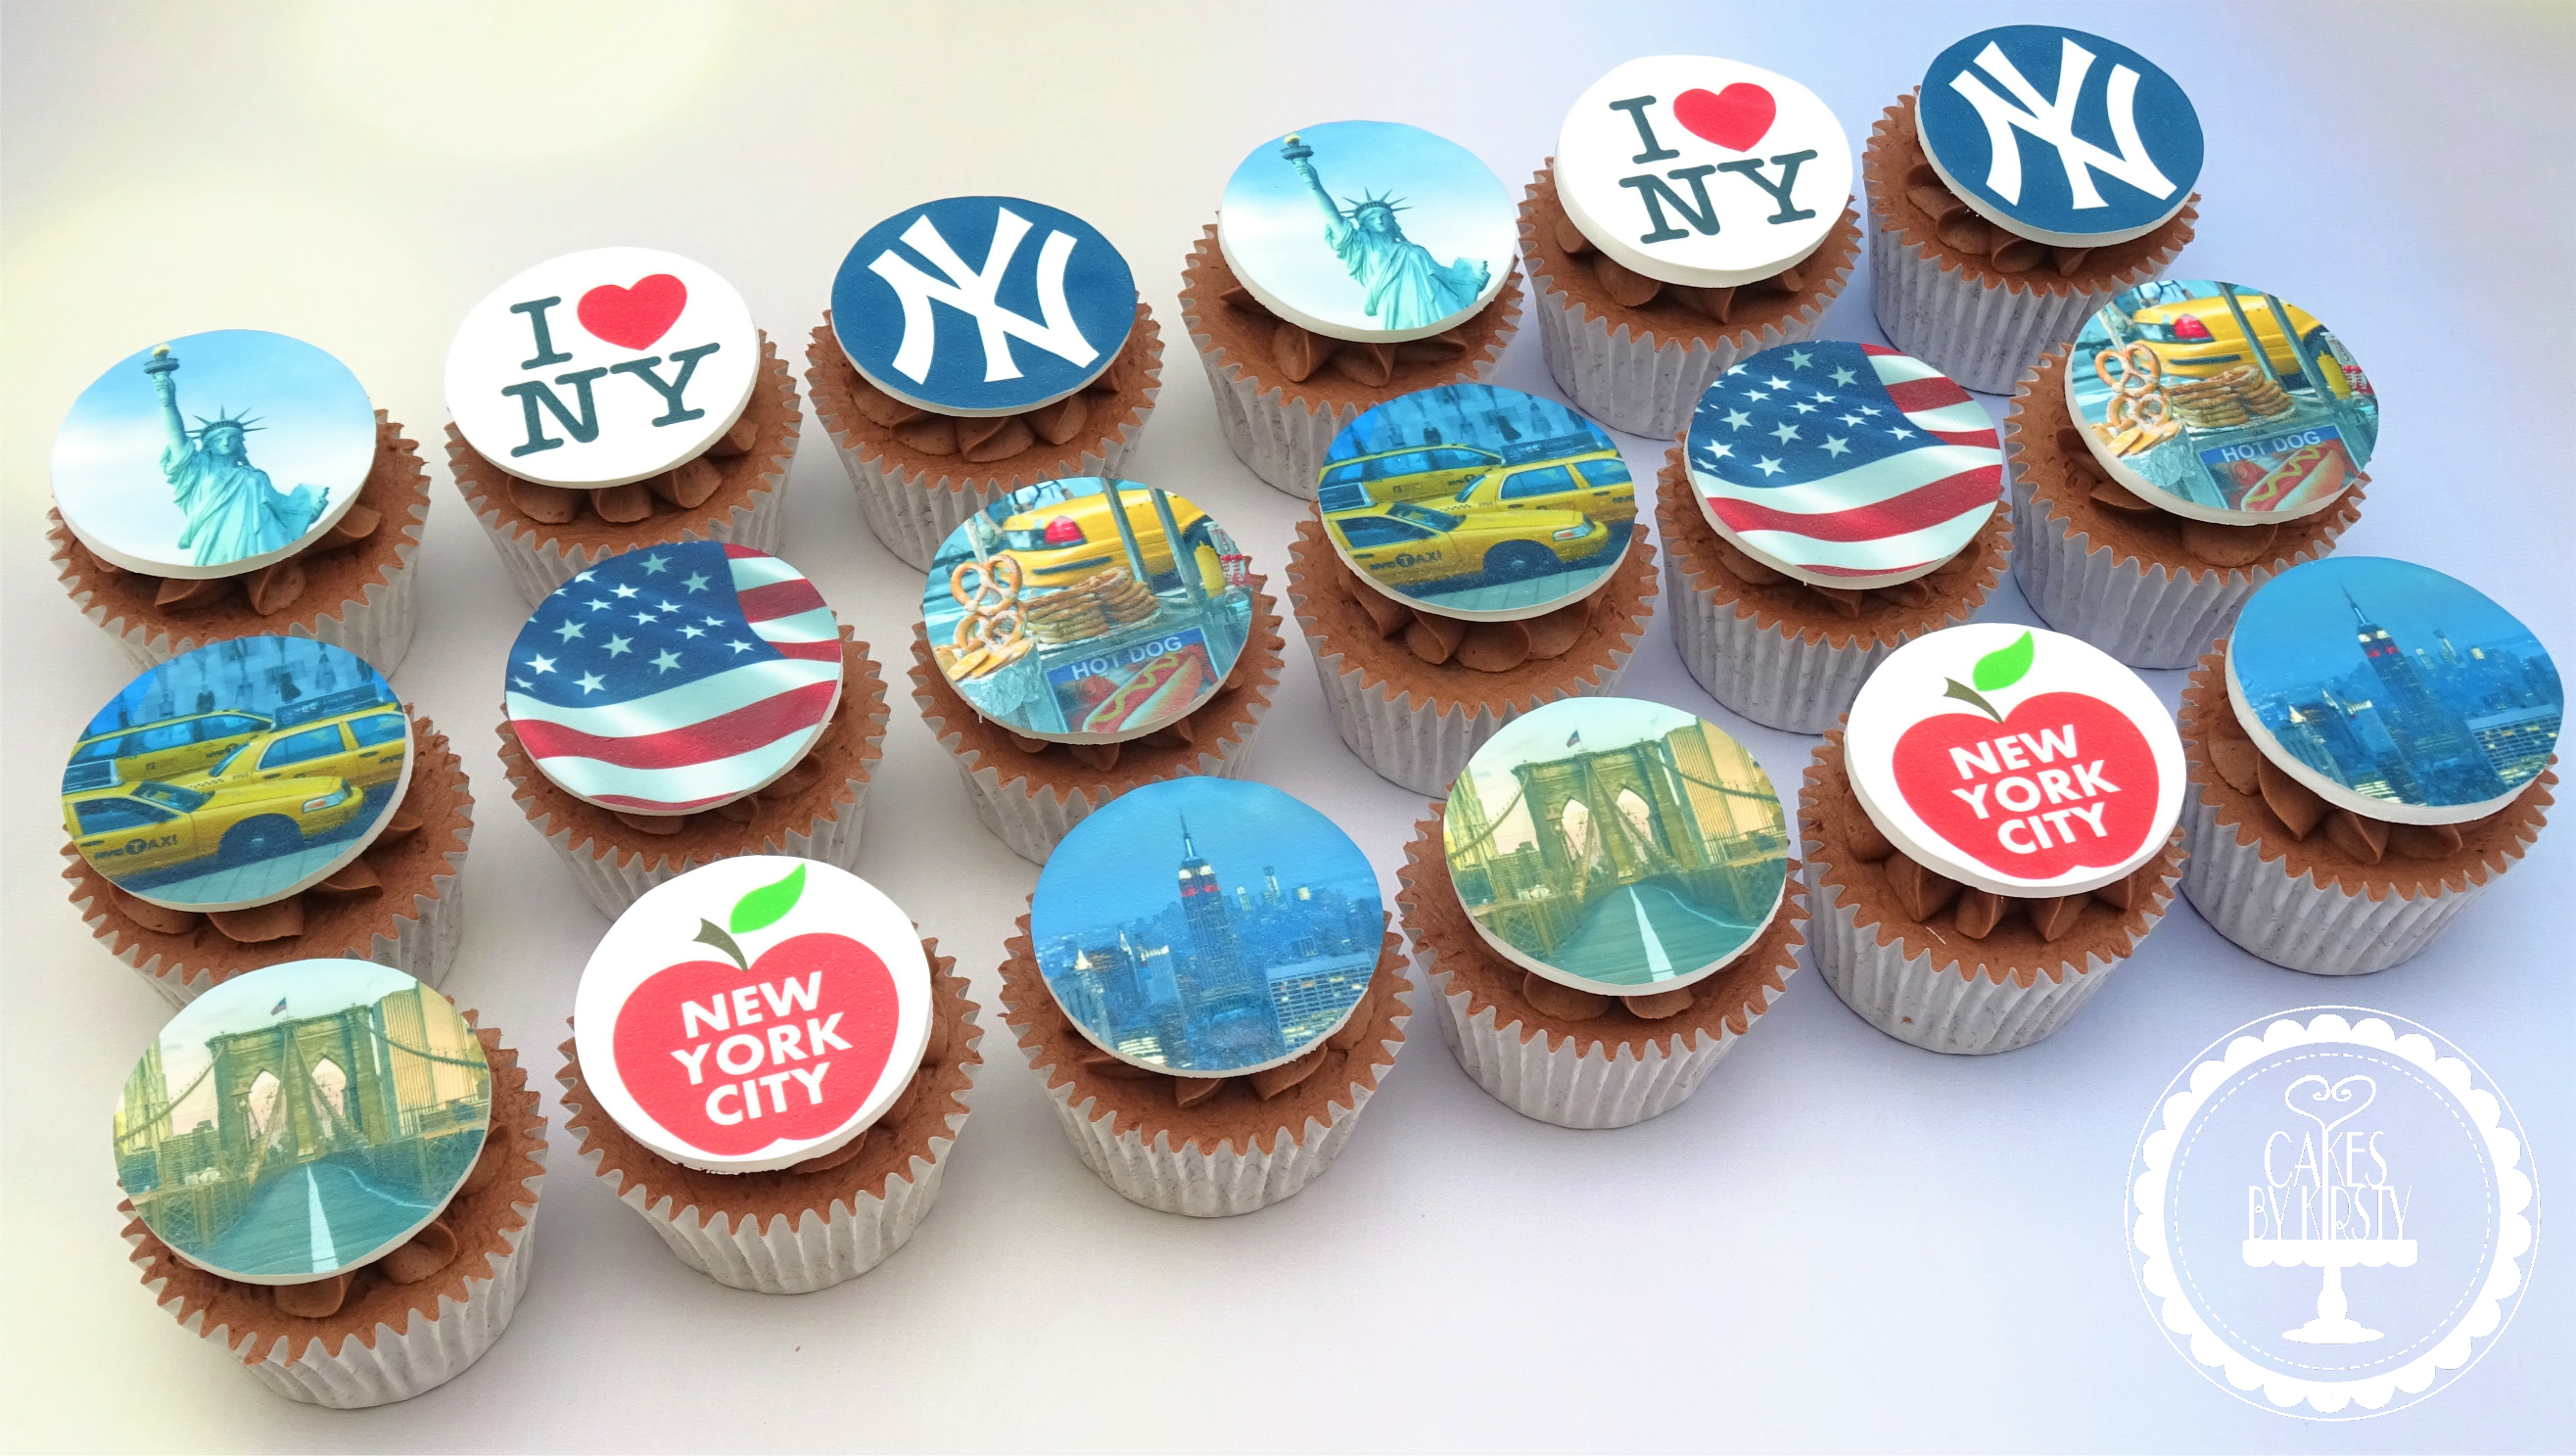 NYC Cupcakes